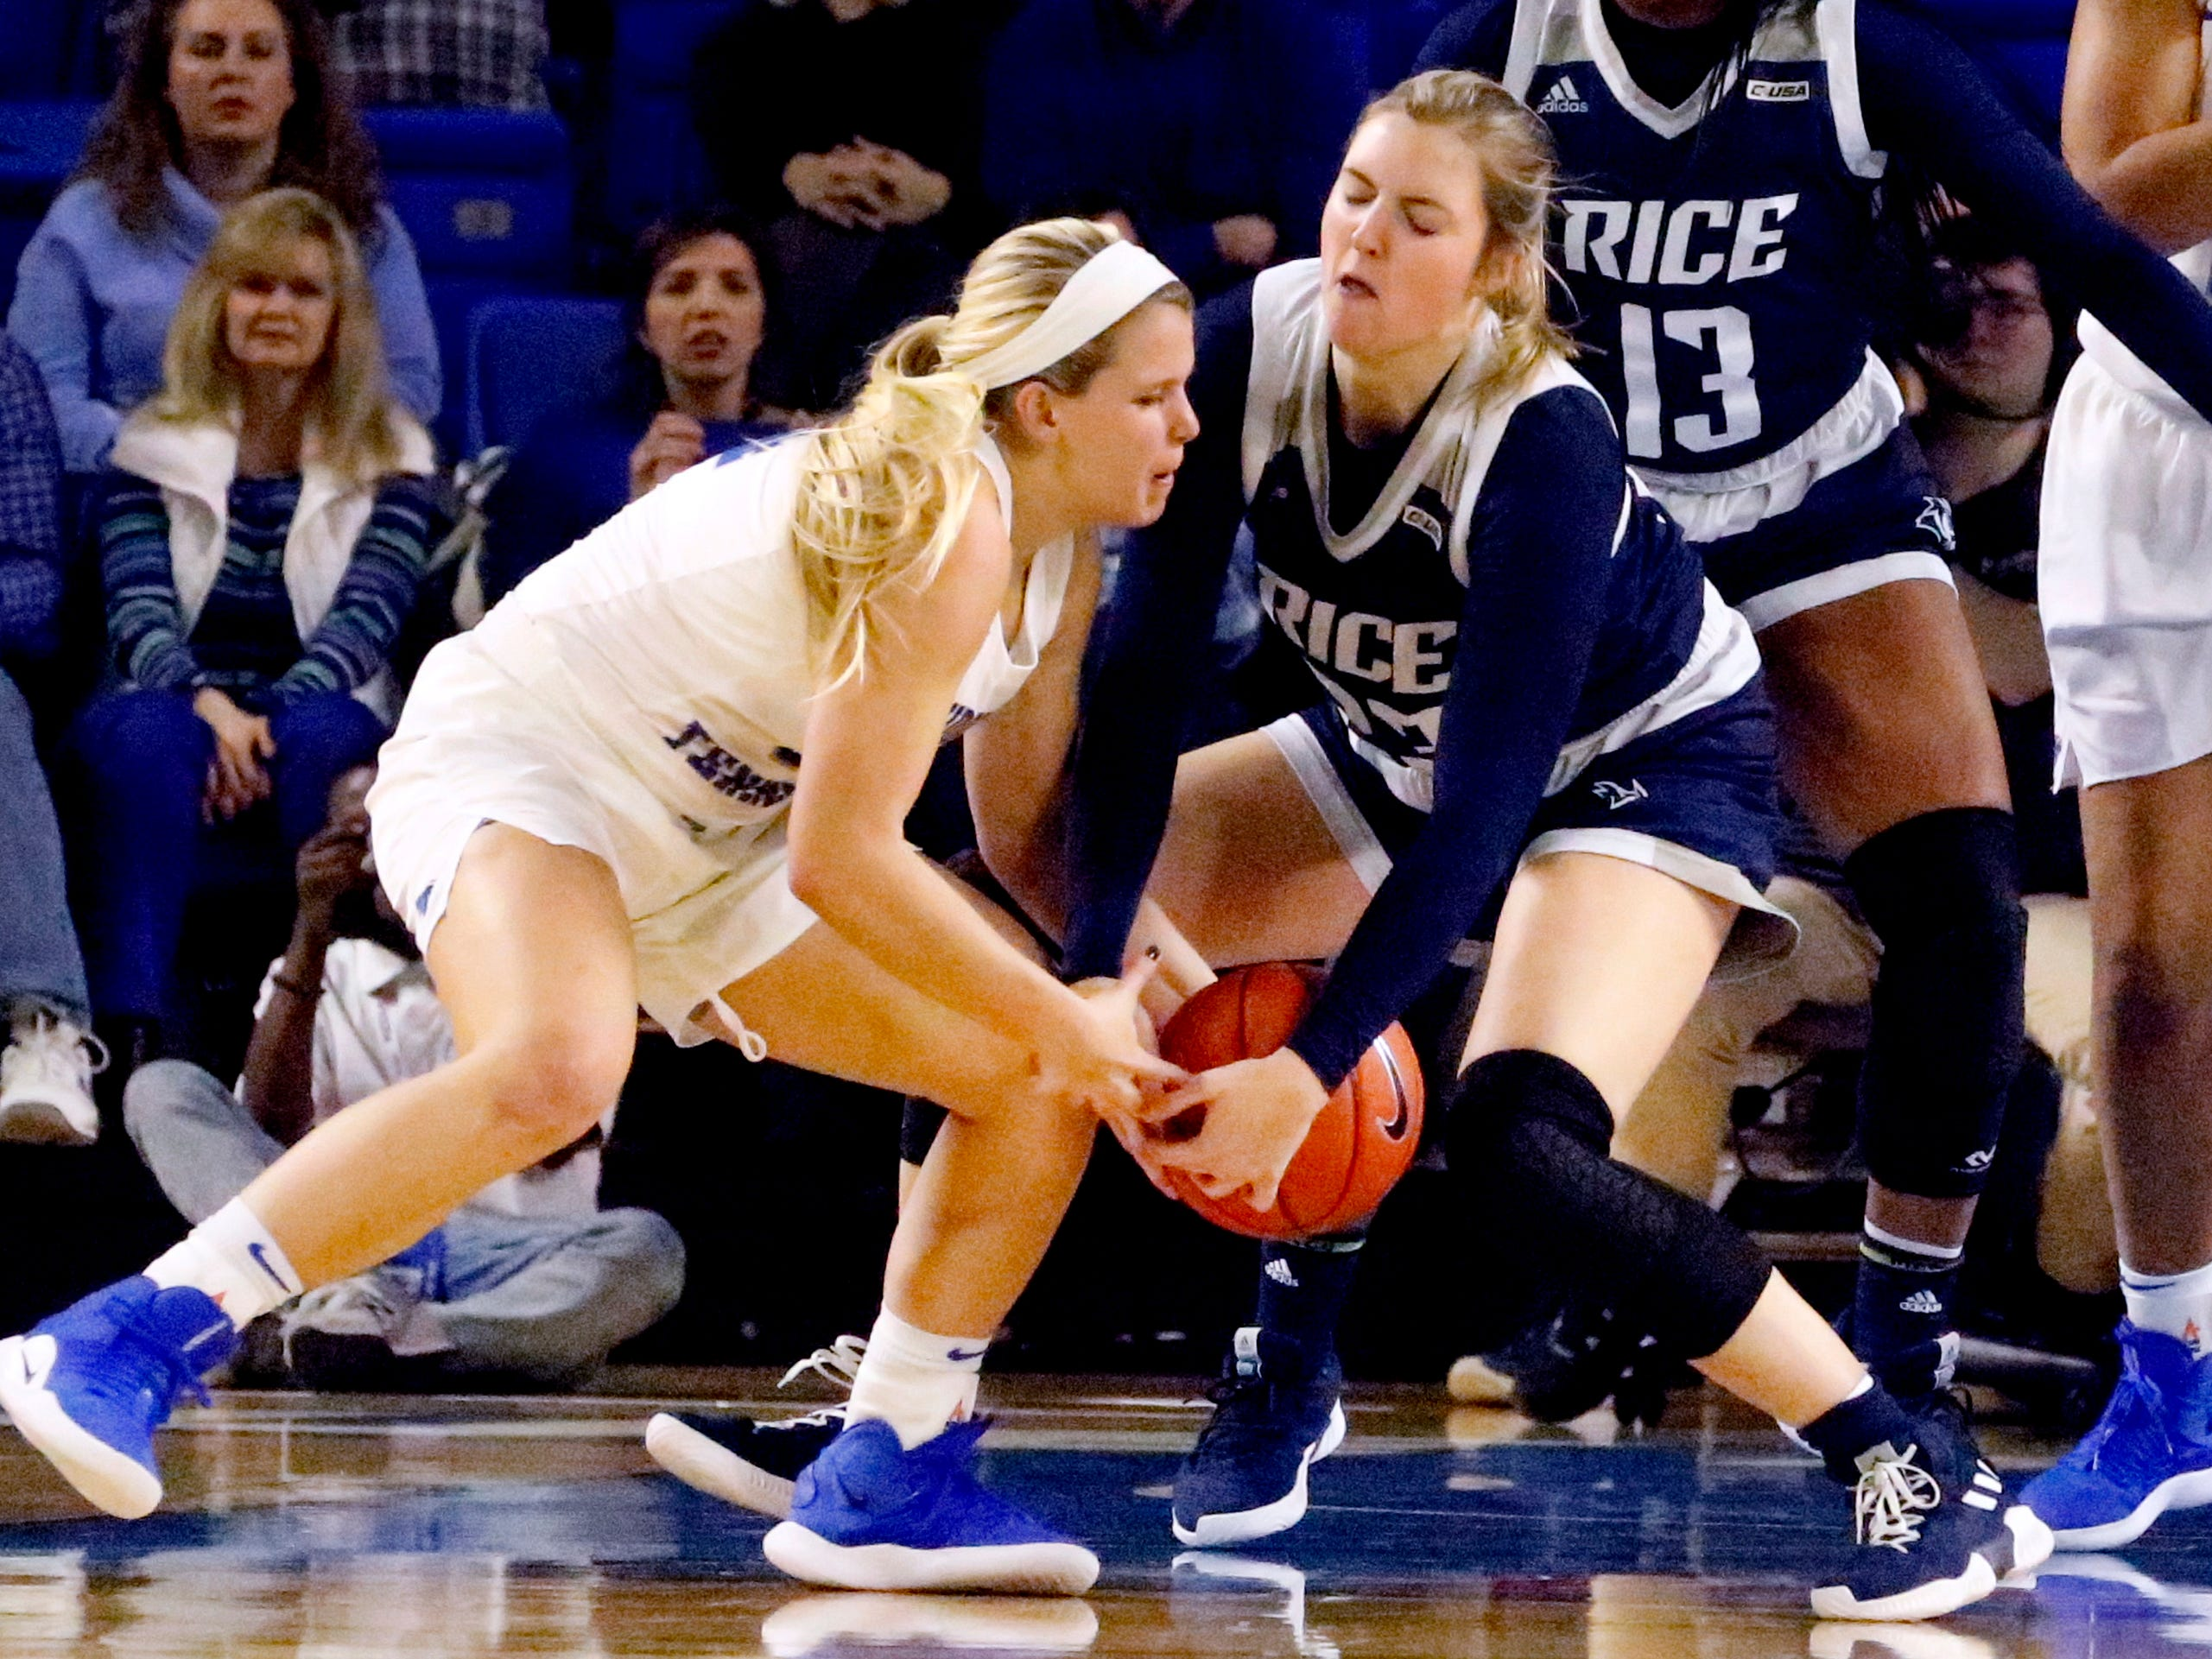 MTSU's guard Katie Collier (14) and Rice's center Nancy Mulkey (32) fight for position of the ball on Thursday Jan. 24, 2019.